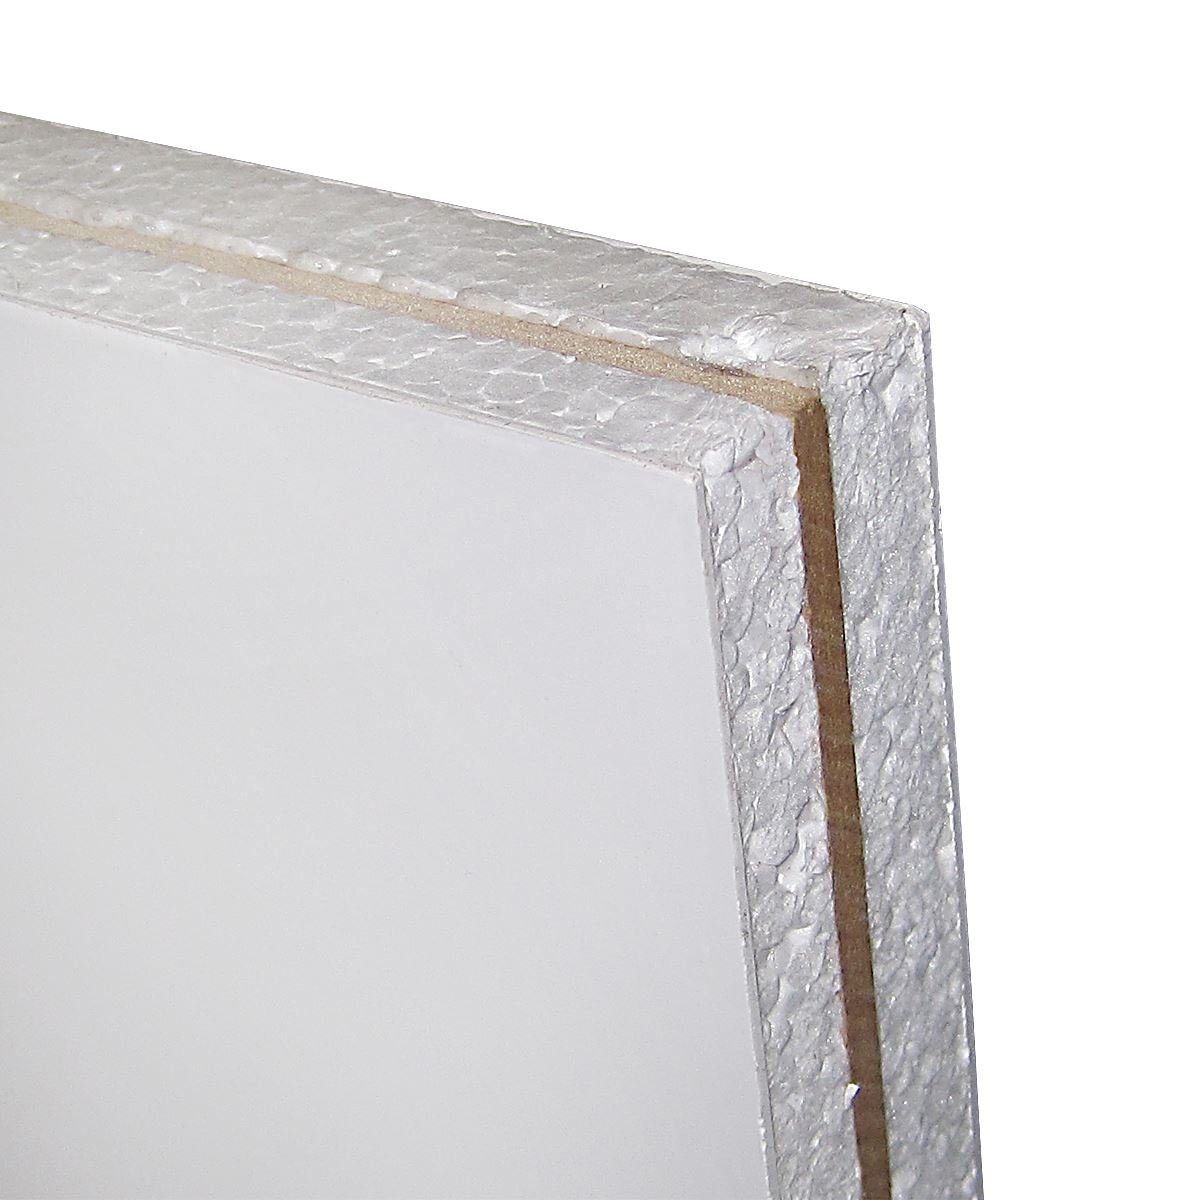 White UPVC Flat Half Door Panel MDF Reinforced (W: 750mm x H: 750mm x D: 28mm) 28mm Thick Plastic Filled Truly PVC Supplies